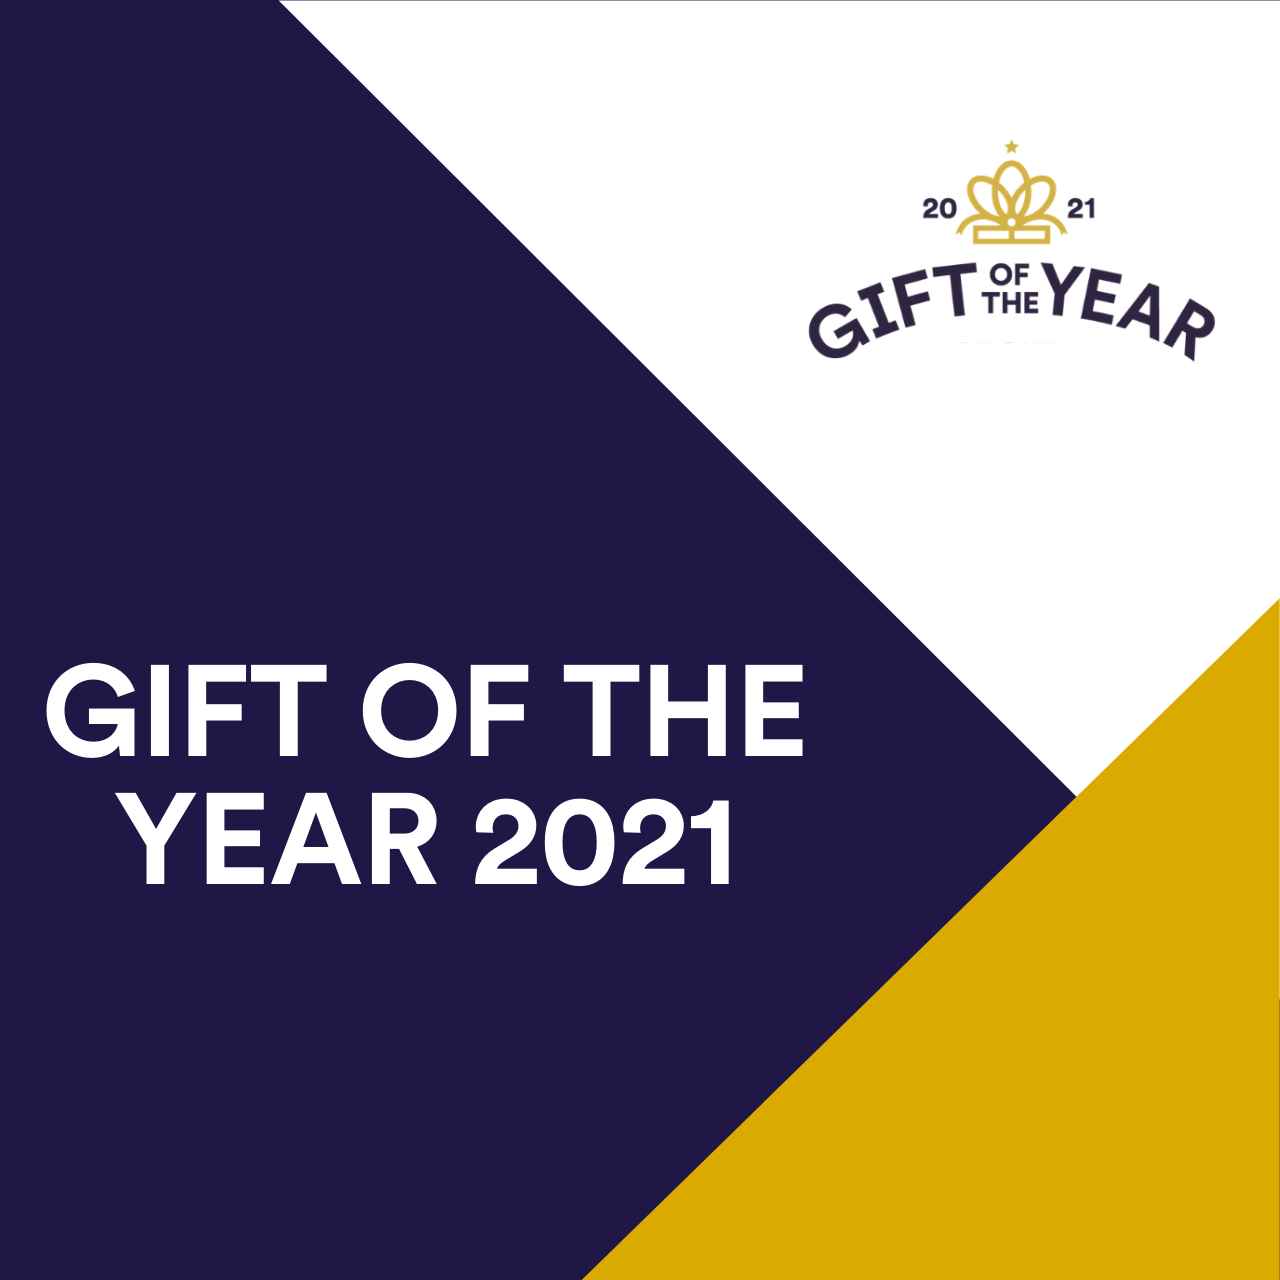 Gift of the Year shortlist announced